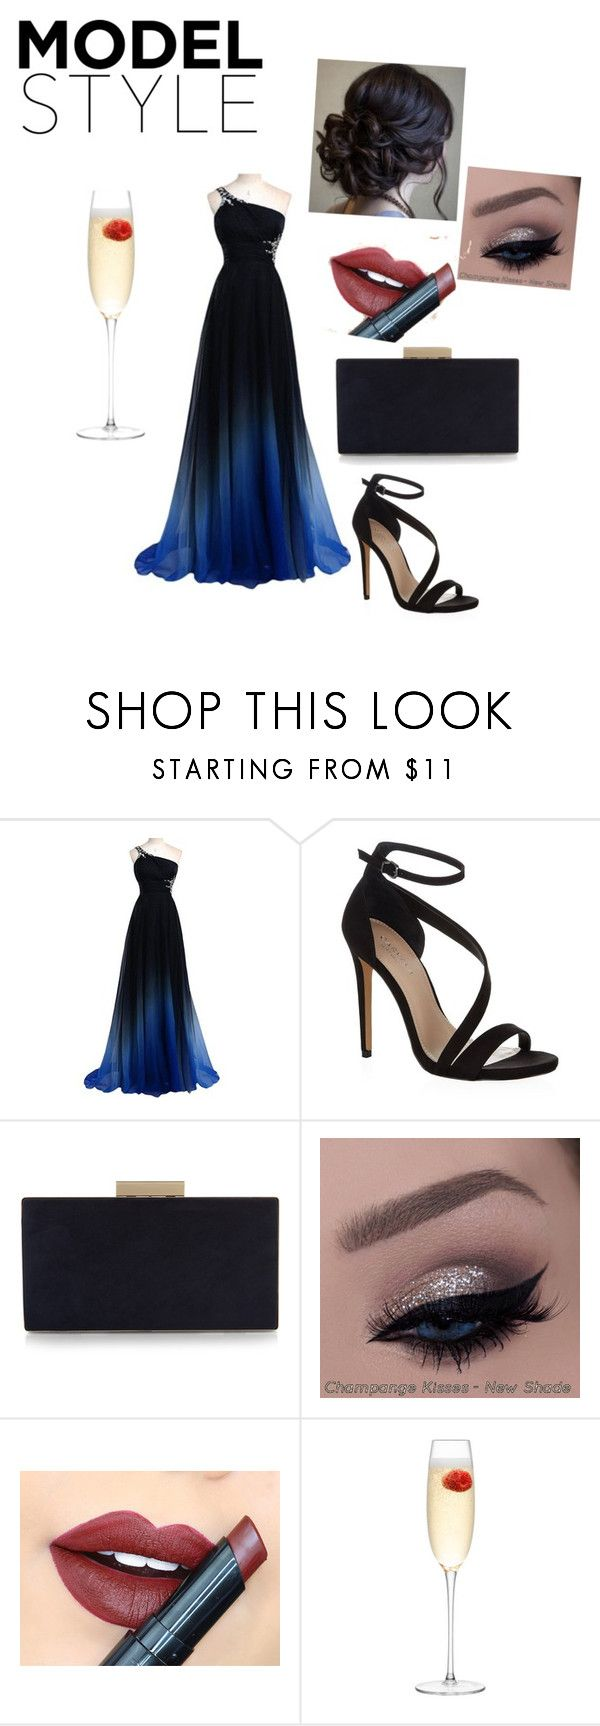 """Untitled #5"" by daregina13 ❤ liked on Polyvore featuring Carvela Kurt Geiger, Monsoon, Fiebiger, LSA International, women's clothing, women, female, woman, misses and juniors"